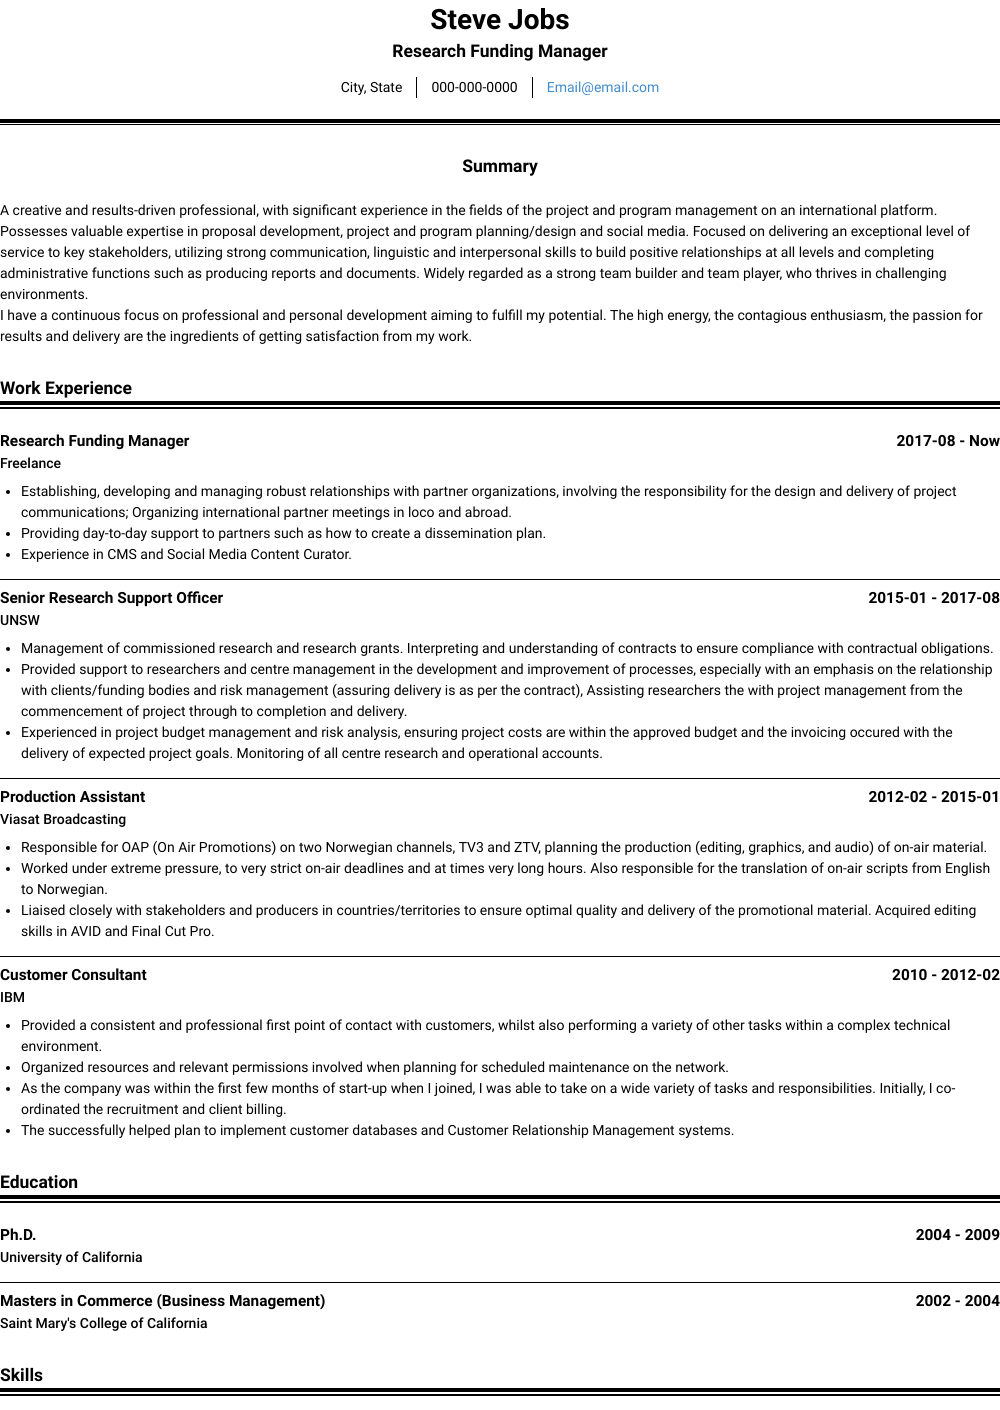 Business Management Resume Examples Management Resume Samples Templates Visualcv